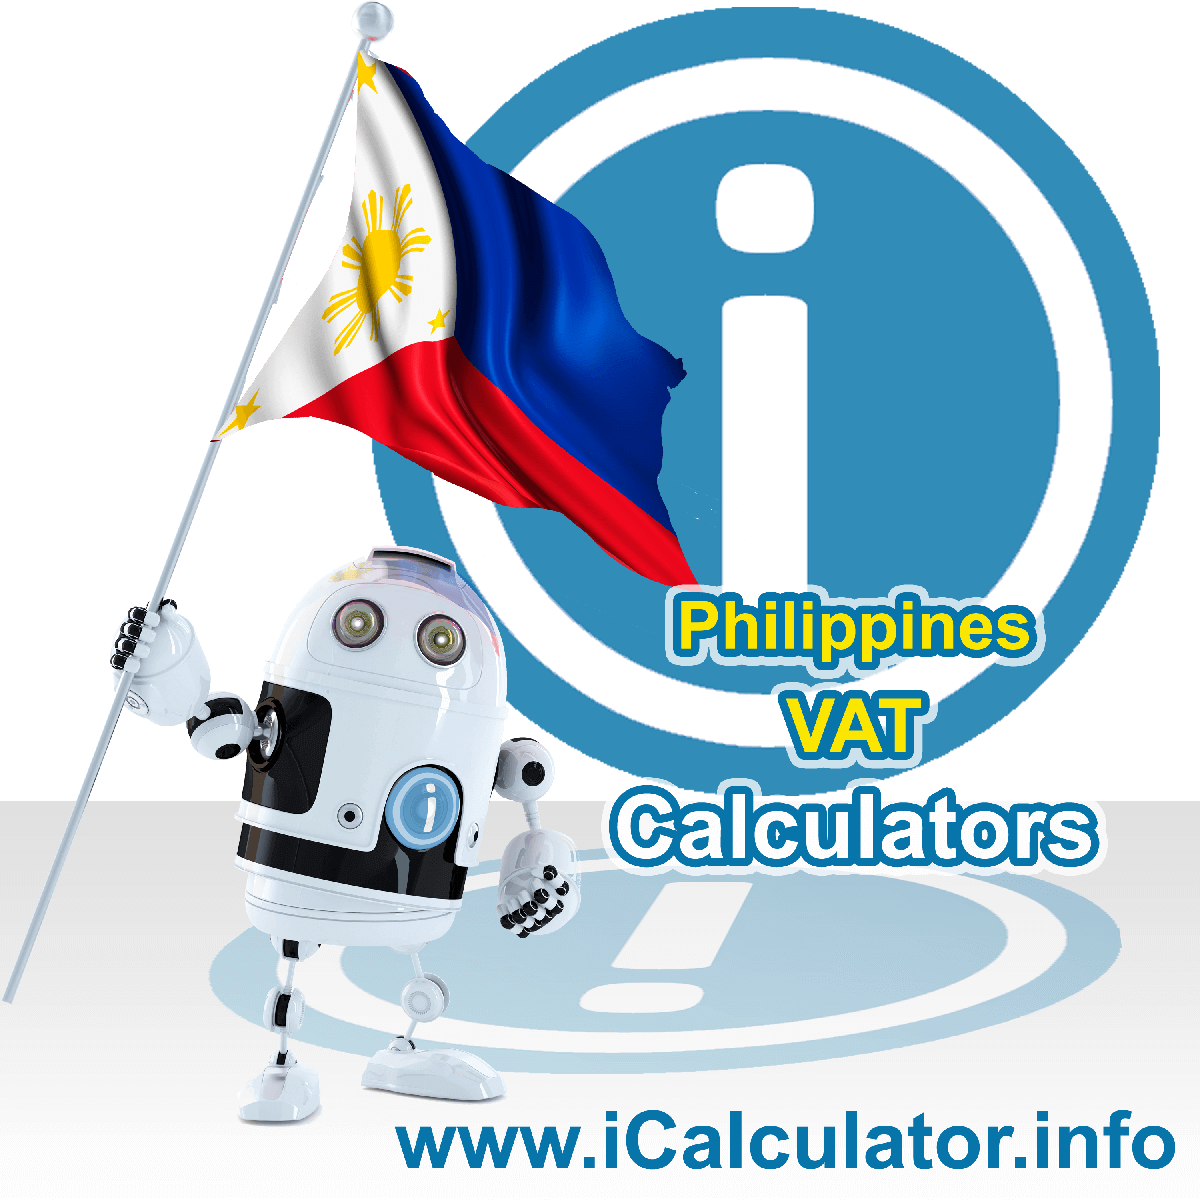 Philippines VAT Calculator. This image shows the Philippines flag and information relating to the VAT formula used for calculating Value Added Tax in Philippines using the Philippines VAT Calculator in 2020